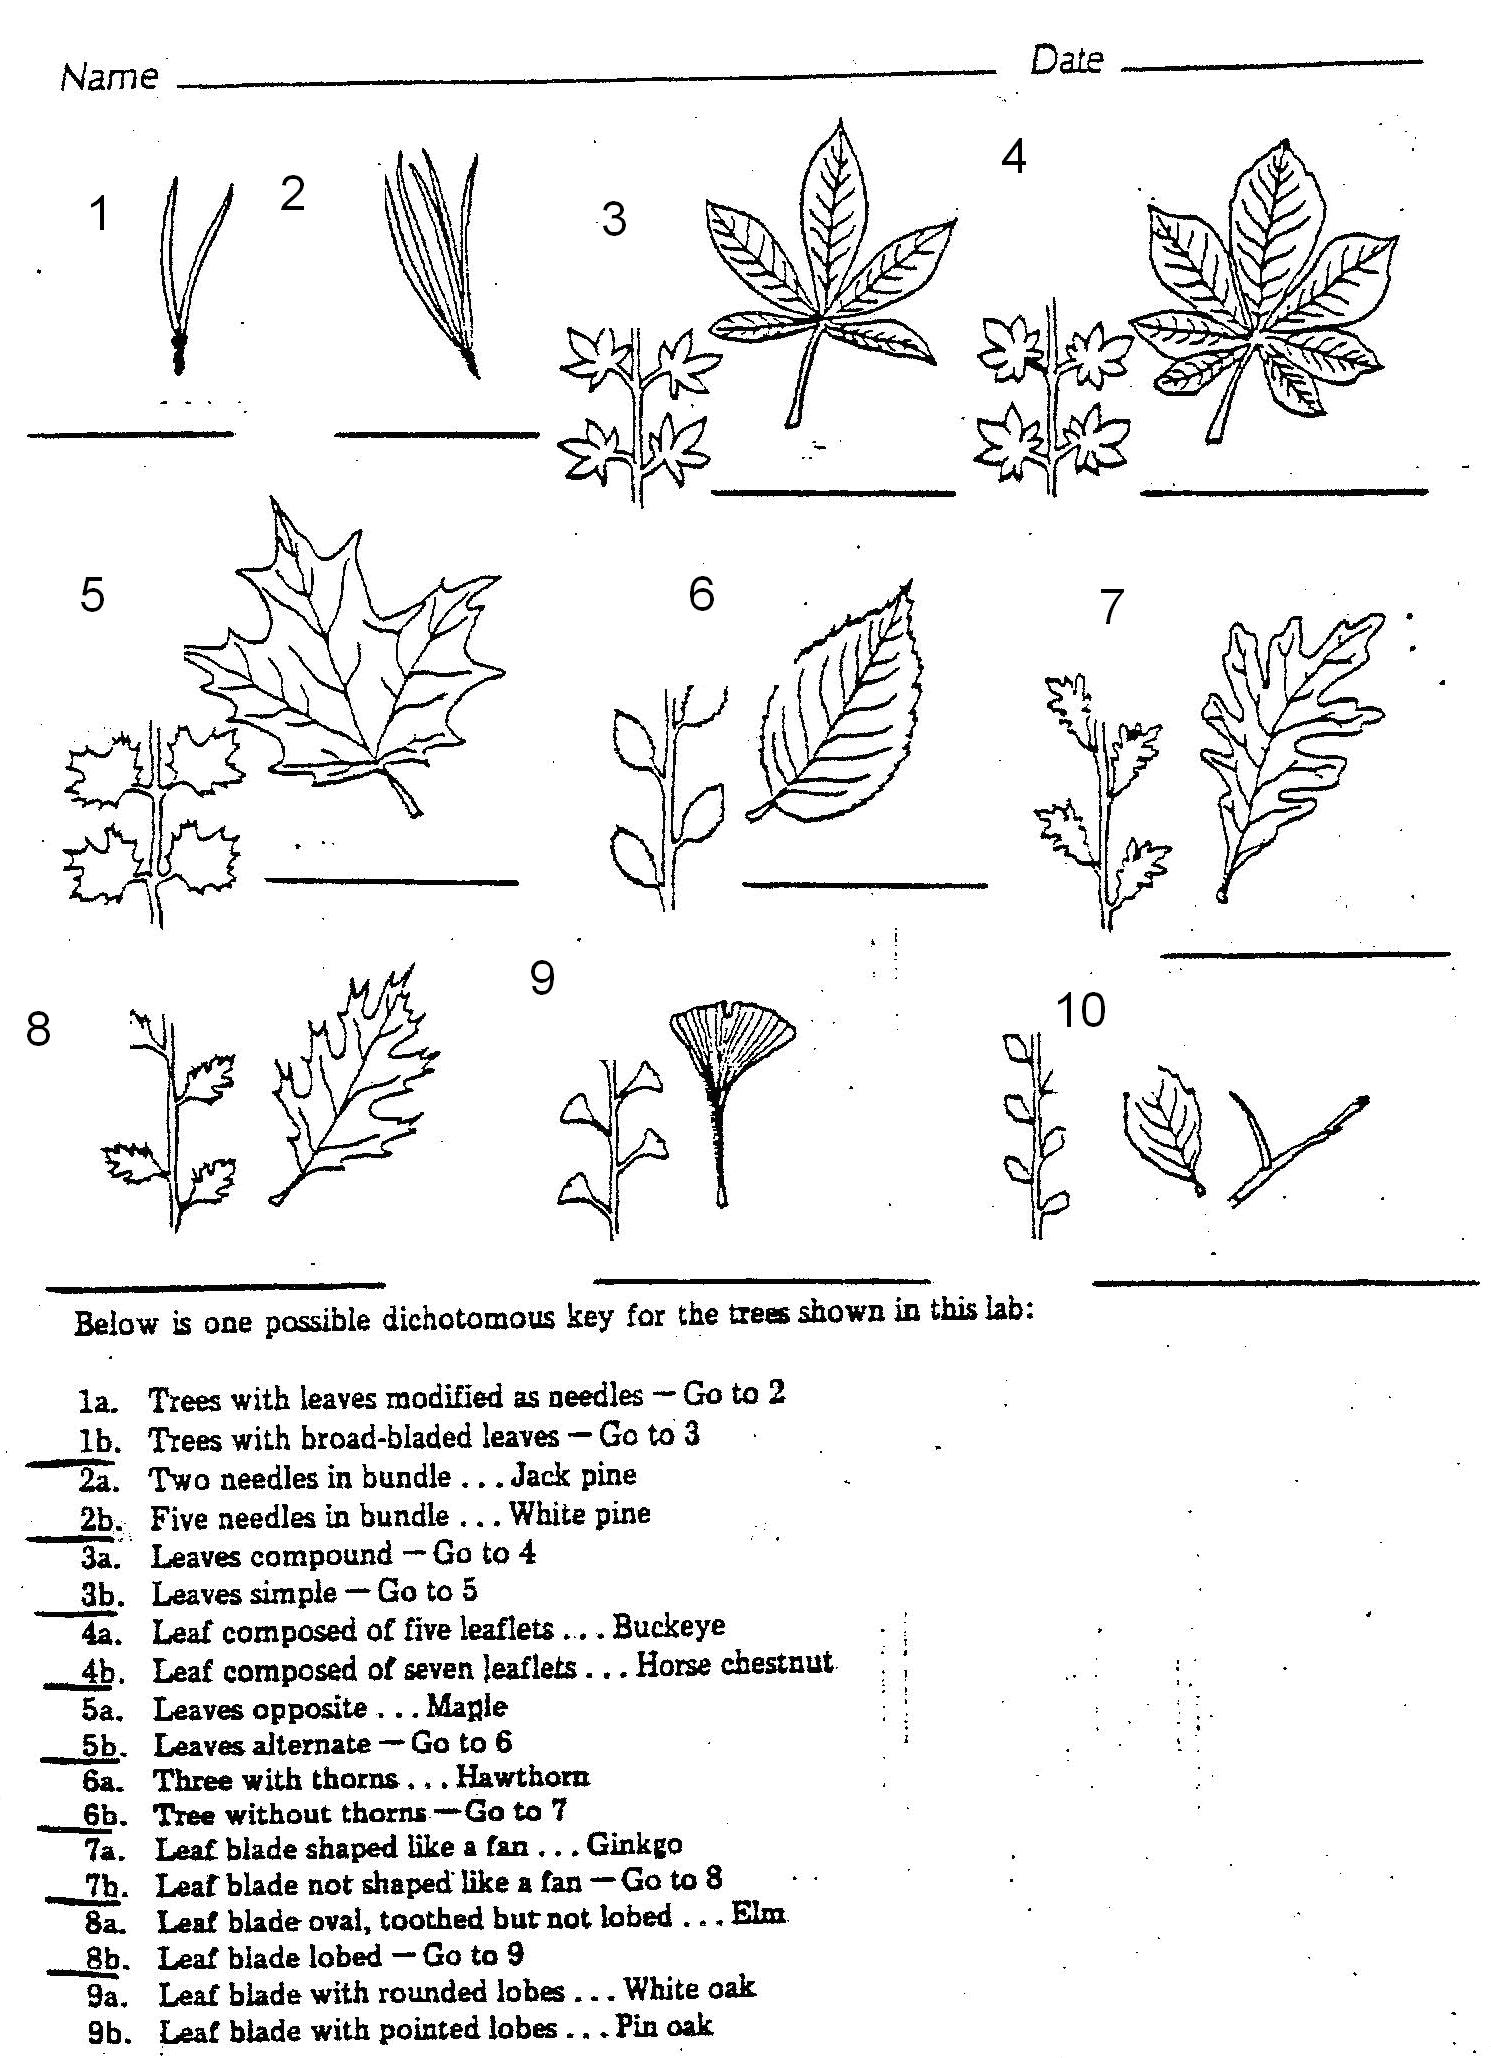 Dorable Leaf Anatomy Worksheet Illustration - Anatomy Ideas - yunoki ...